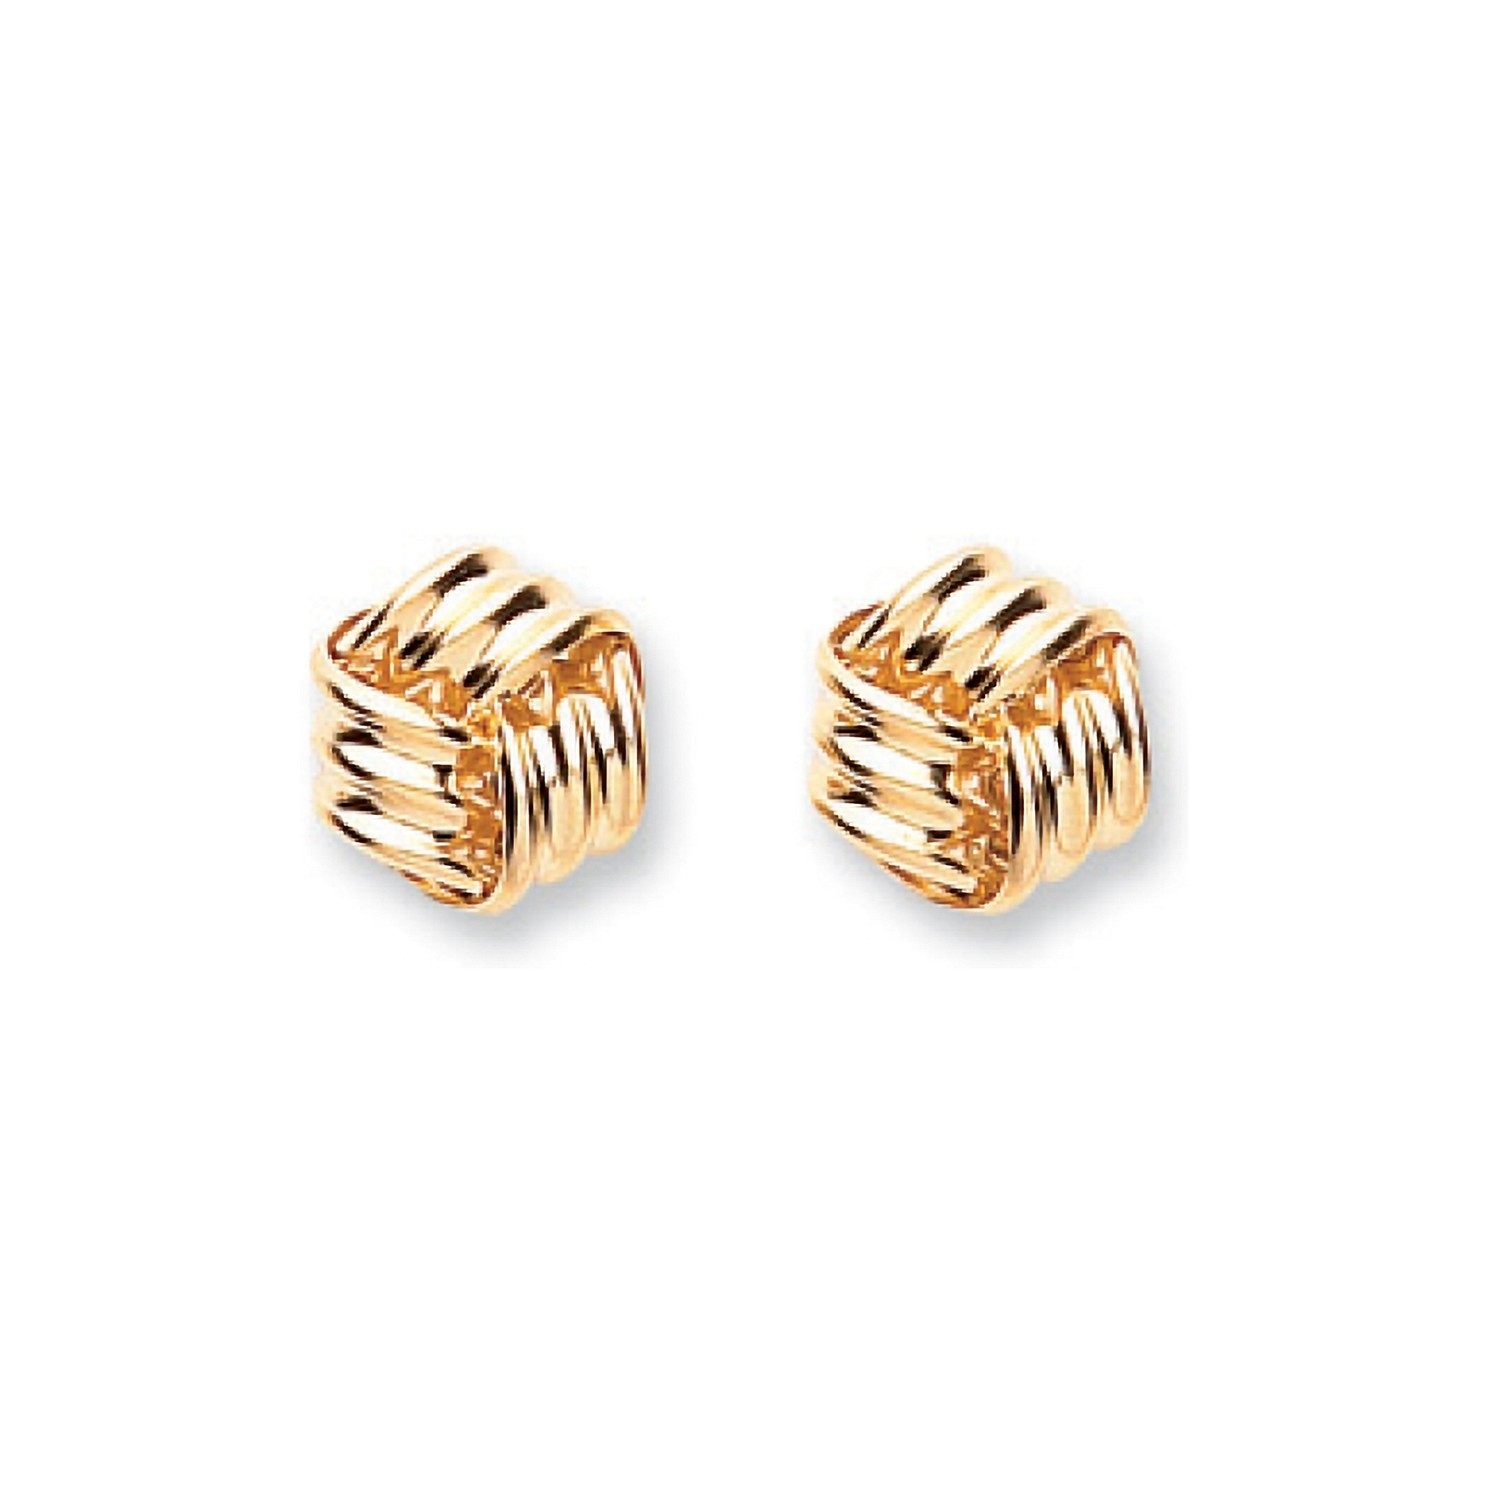 9ct Y/G Fancy Knot Studs